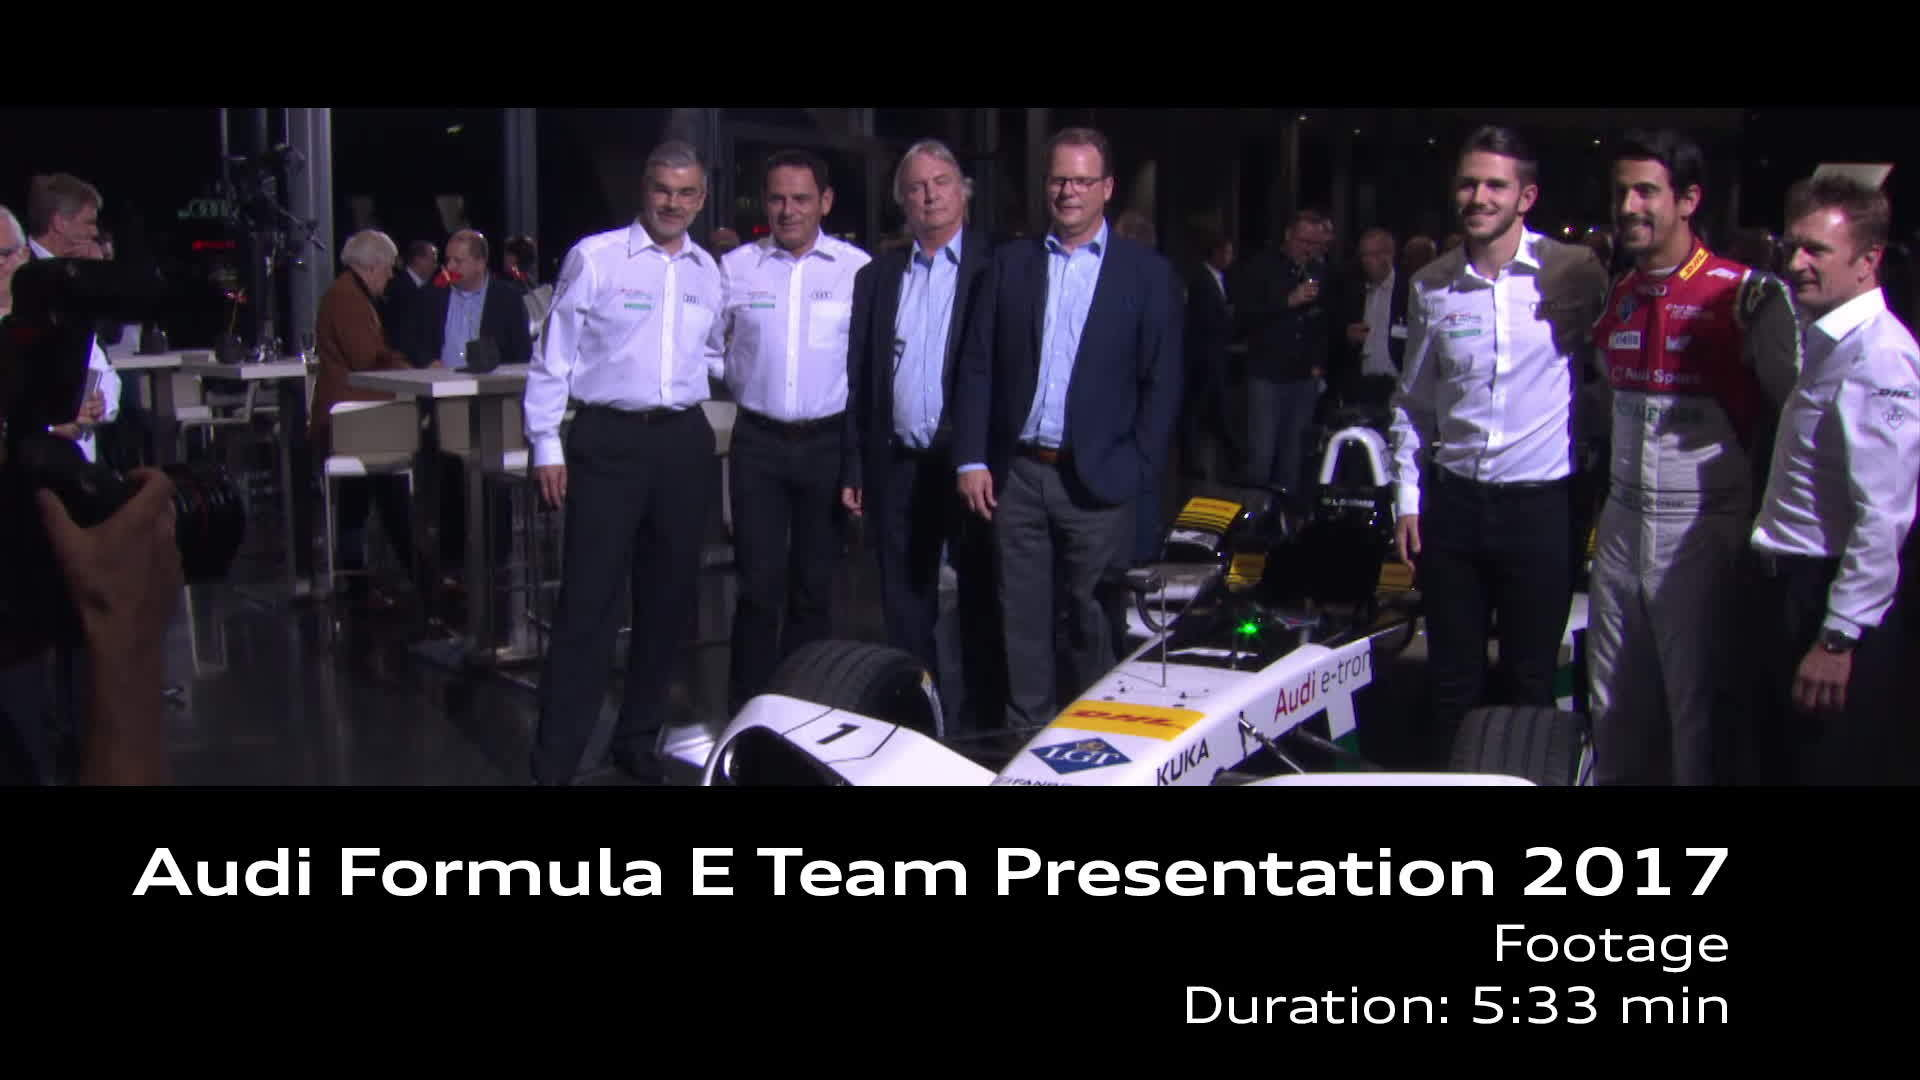 Audi Formula E Team Presentation 2017 Footage